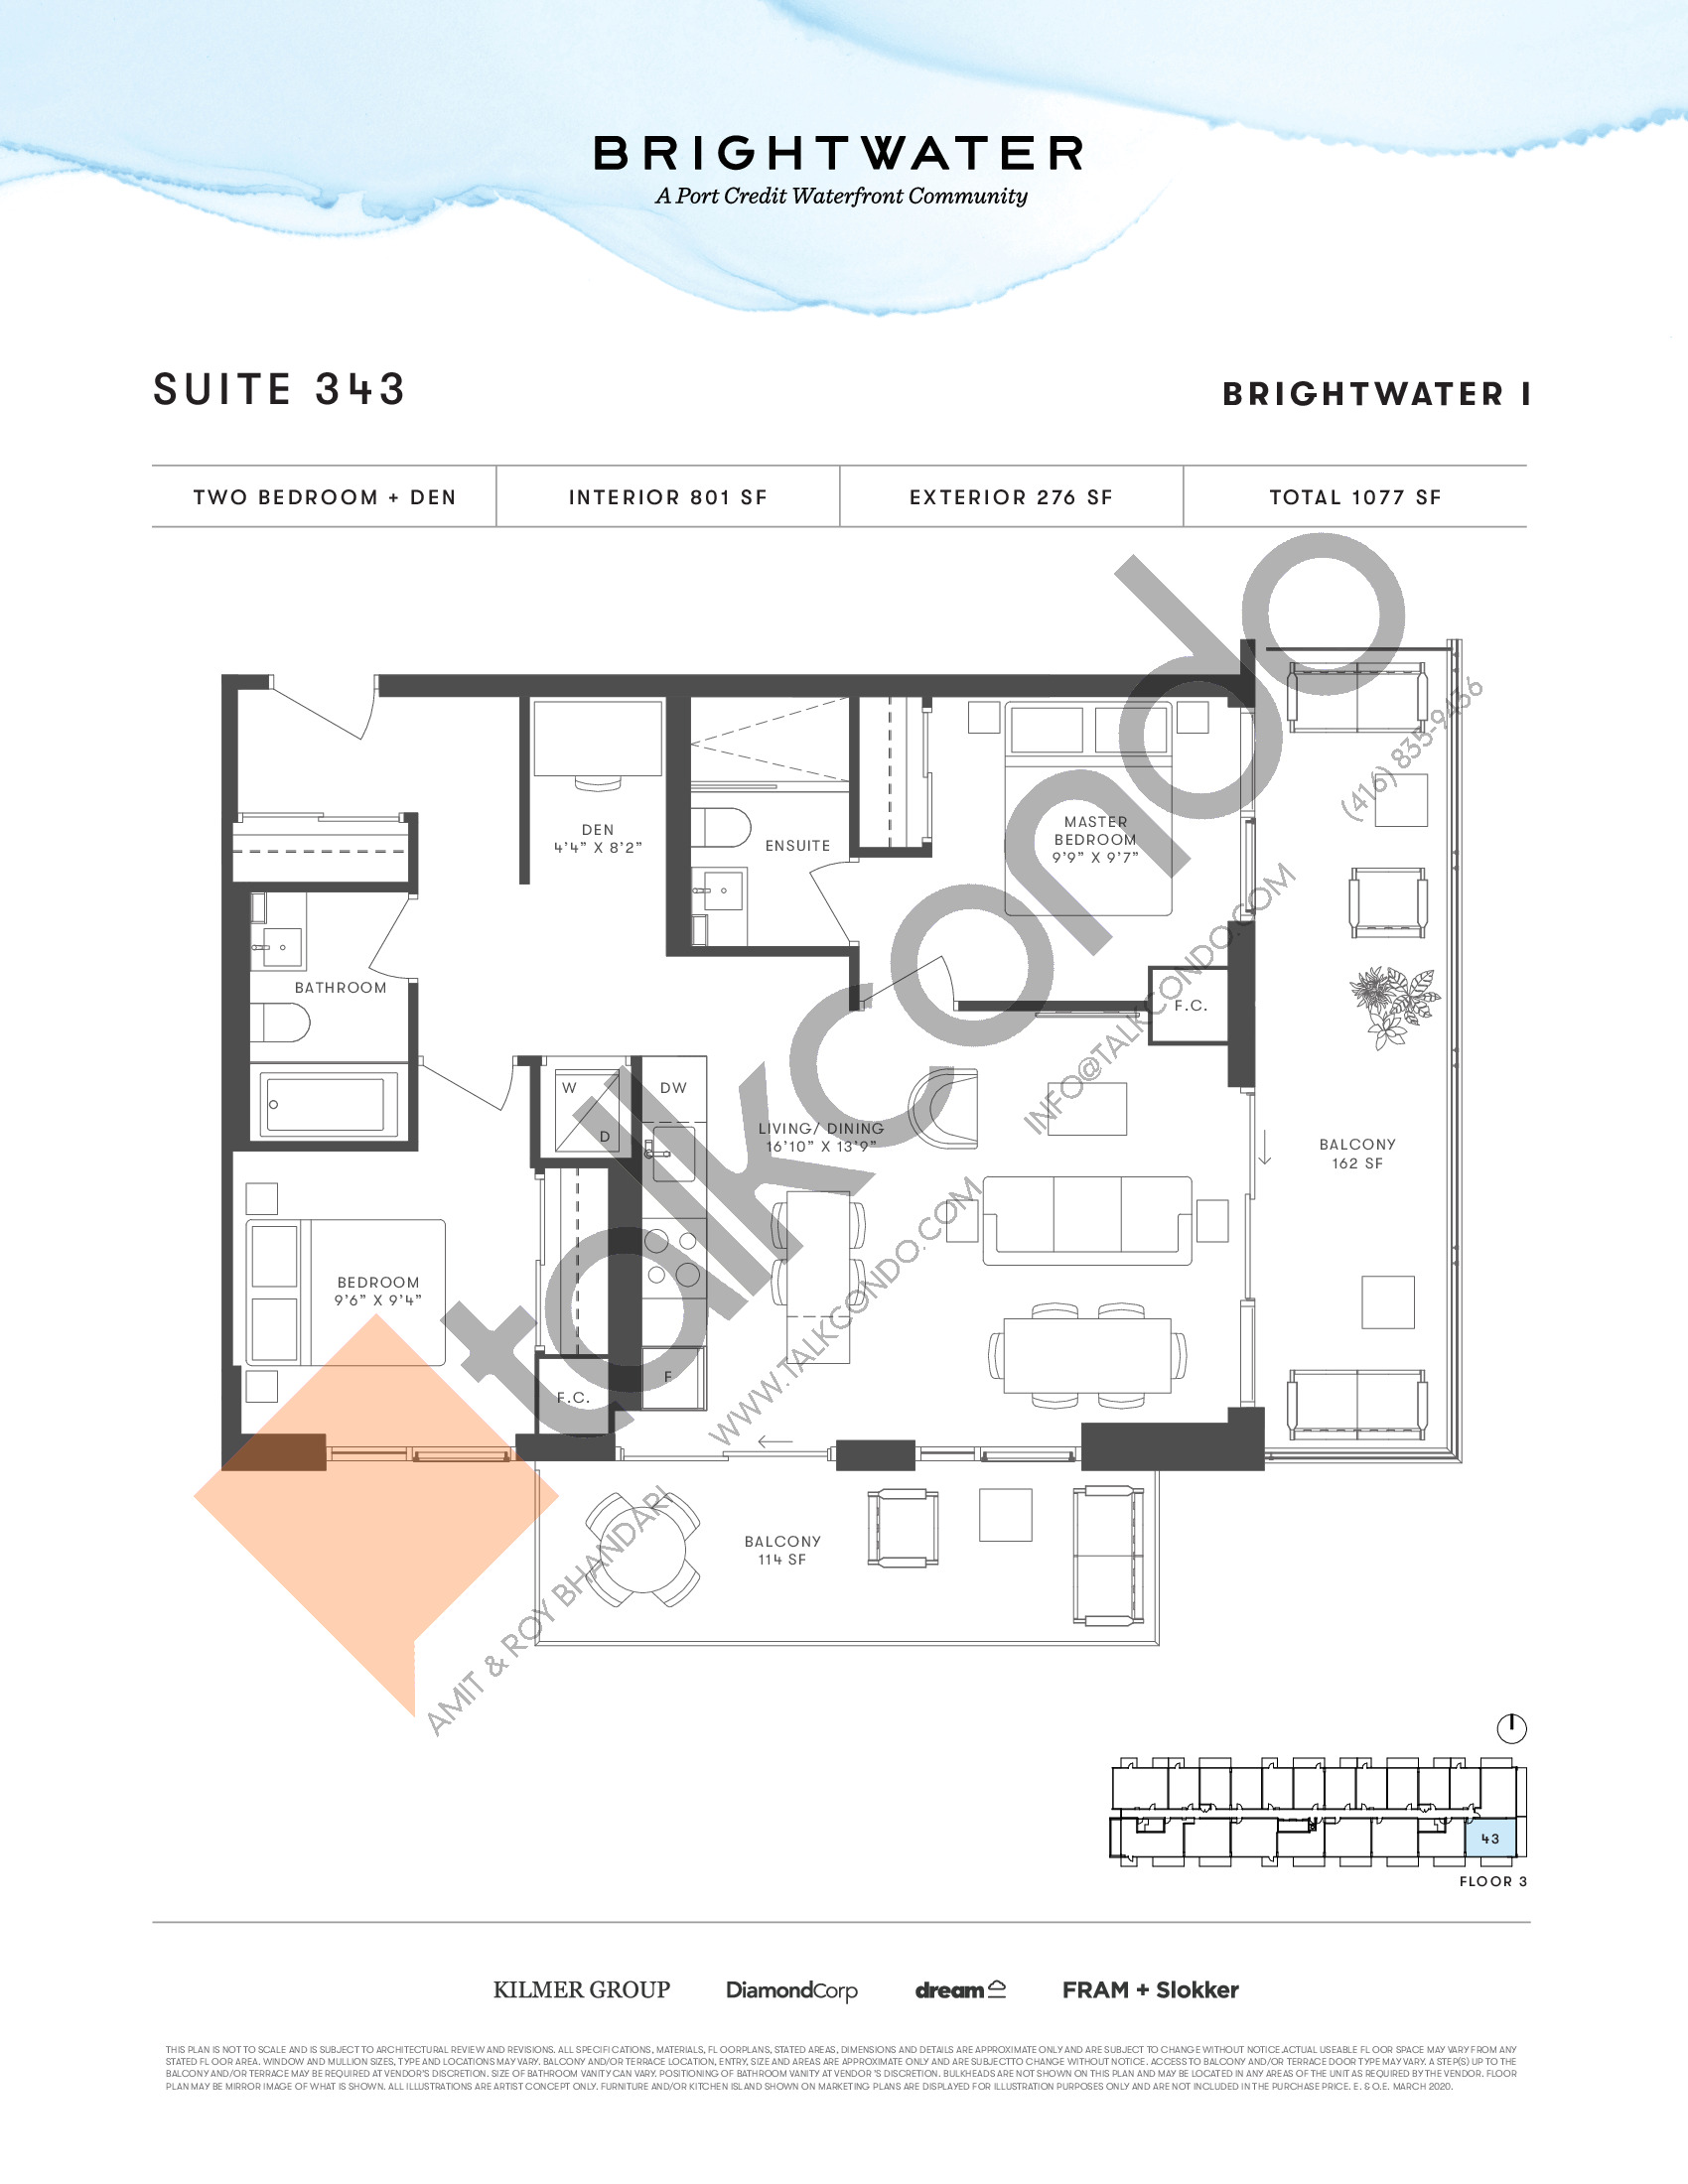 Suite 343 Floor Plan at Brightwater I Condos - 801 sq.ft